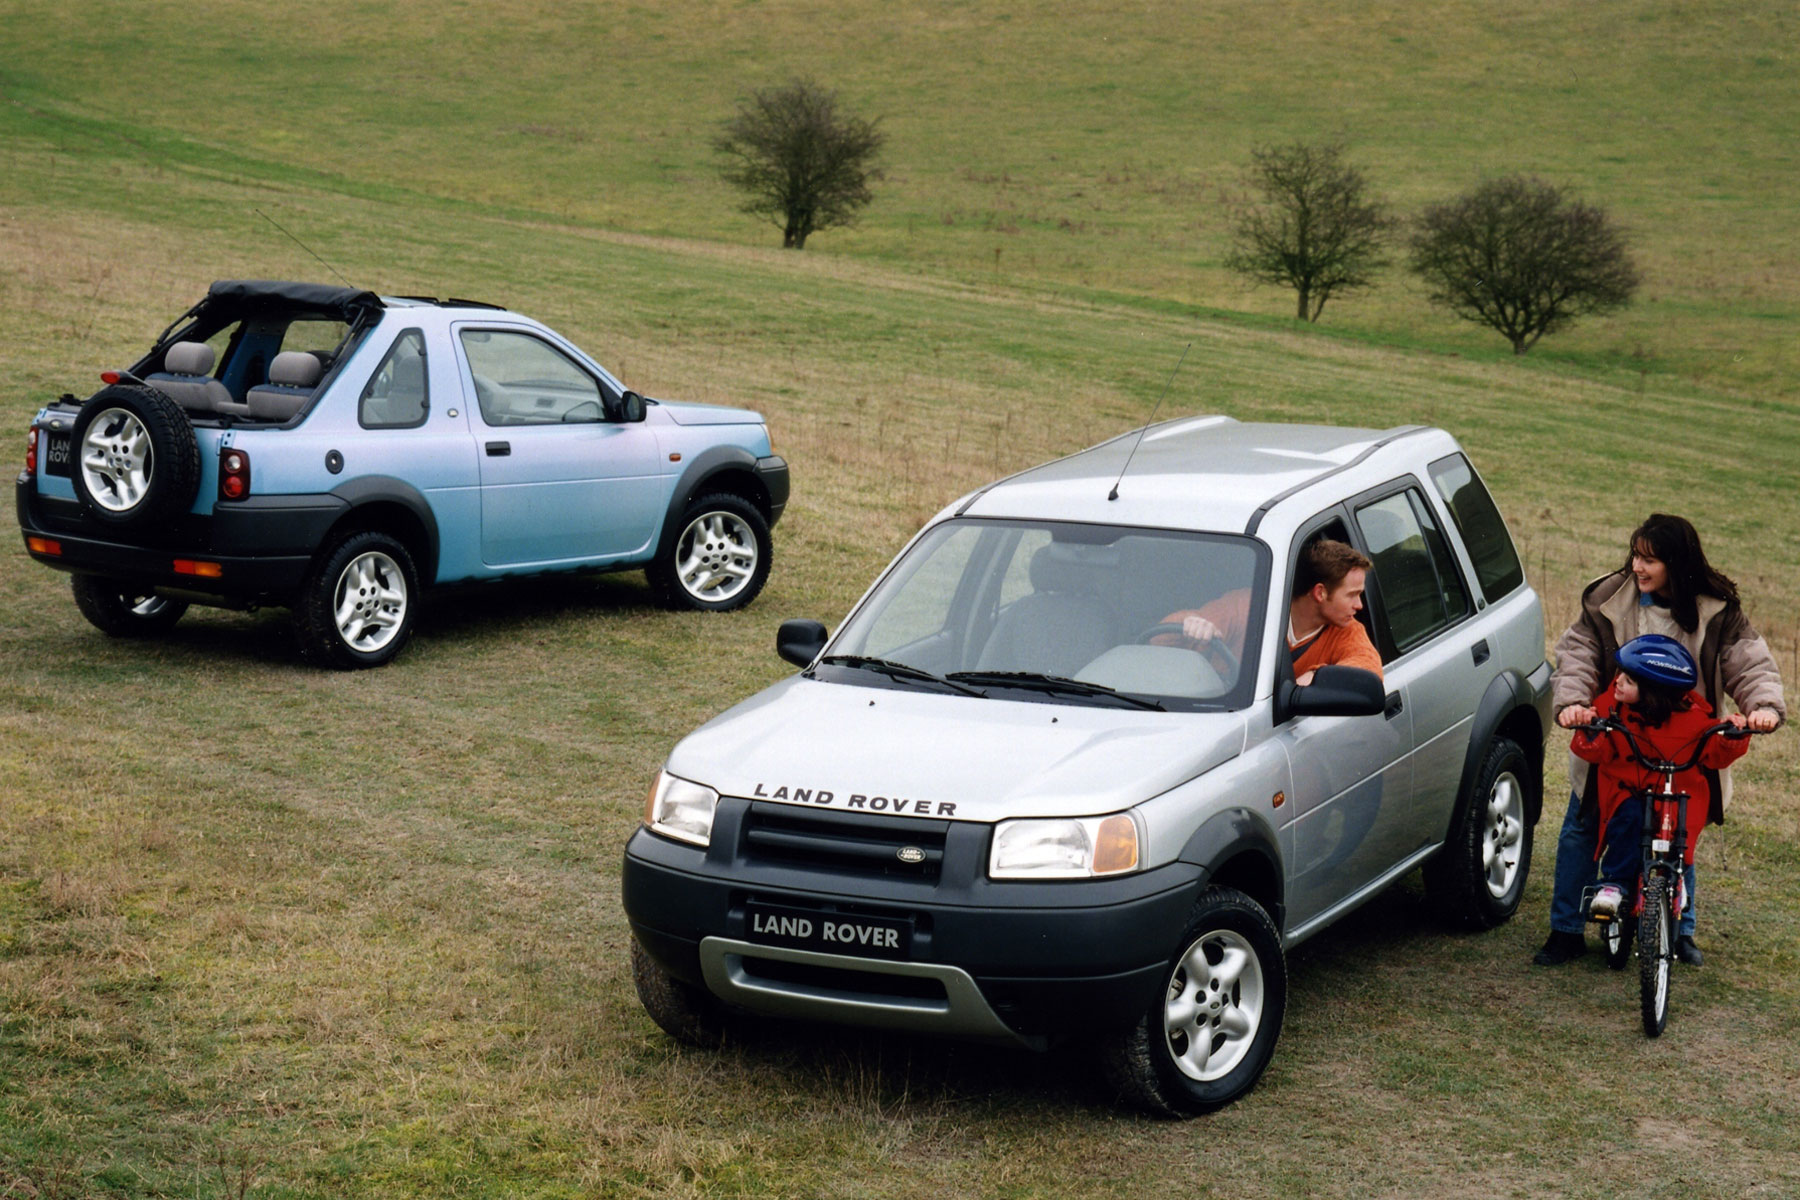 It's official: the Land Rover Freelander is now a classic car